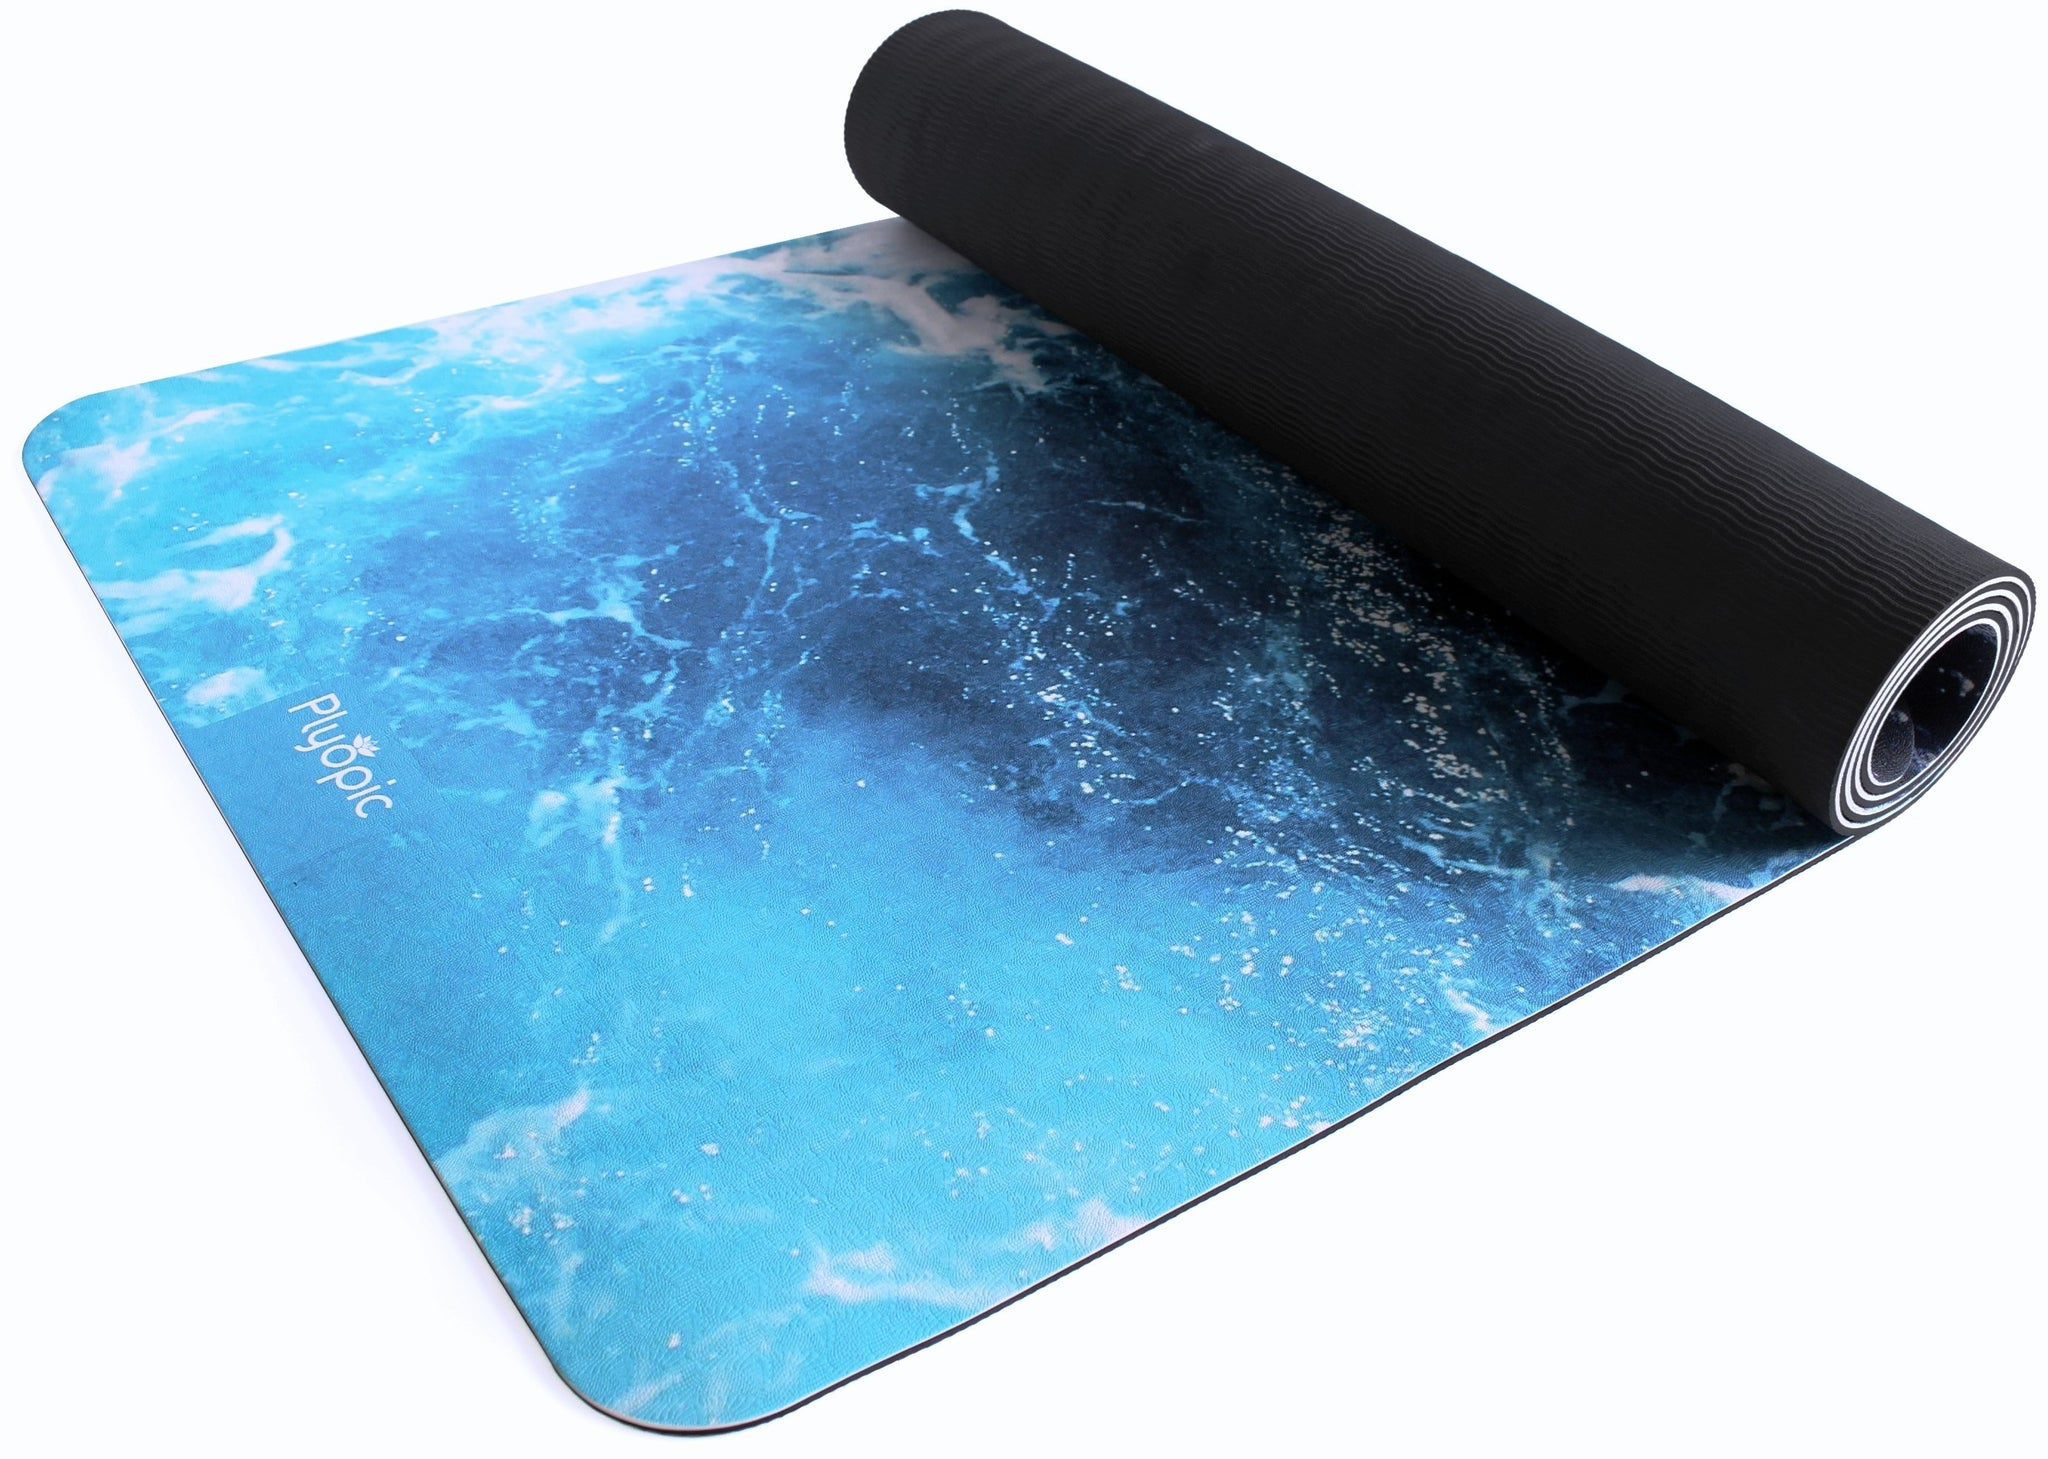 Plyopic-Printed Yoga, Pilates & Exercise Mat - Pacific-Yoga Mat